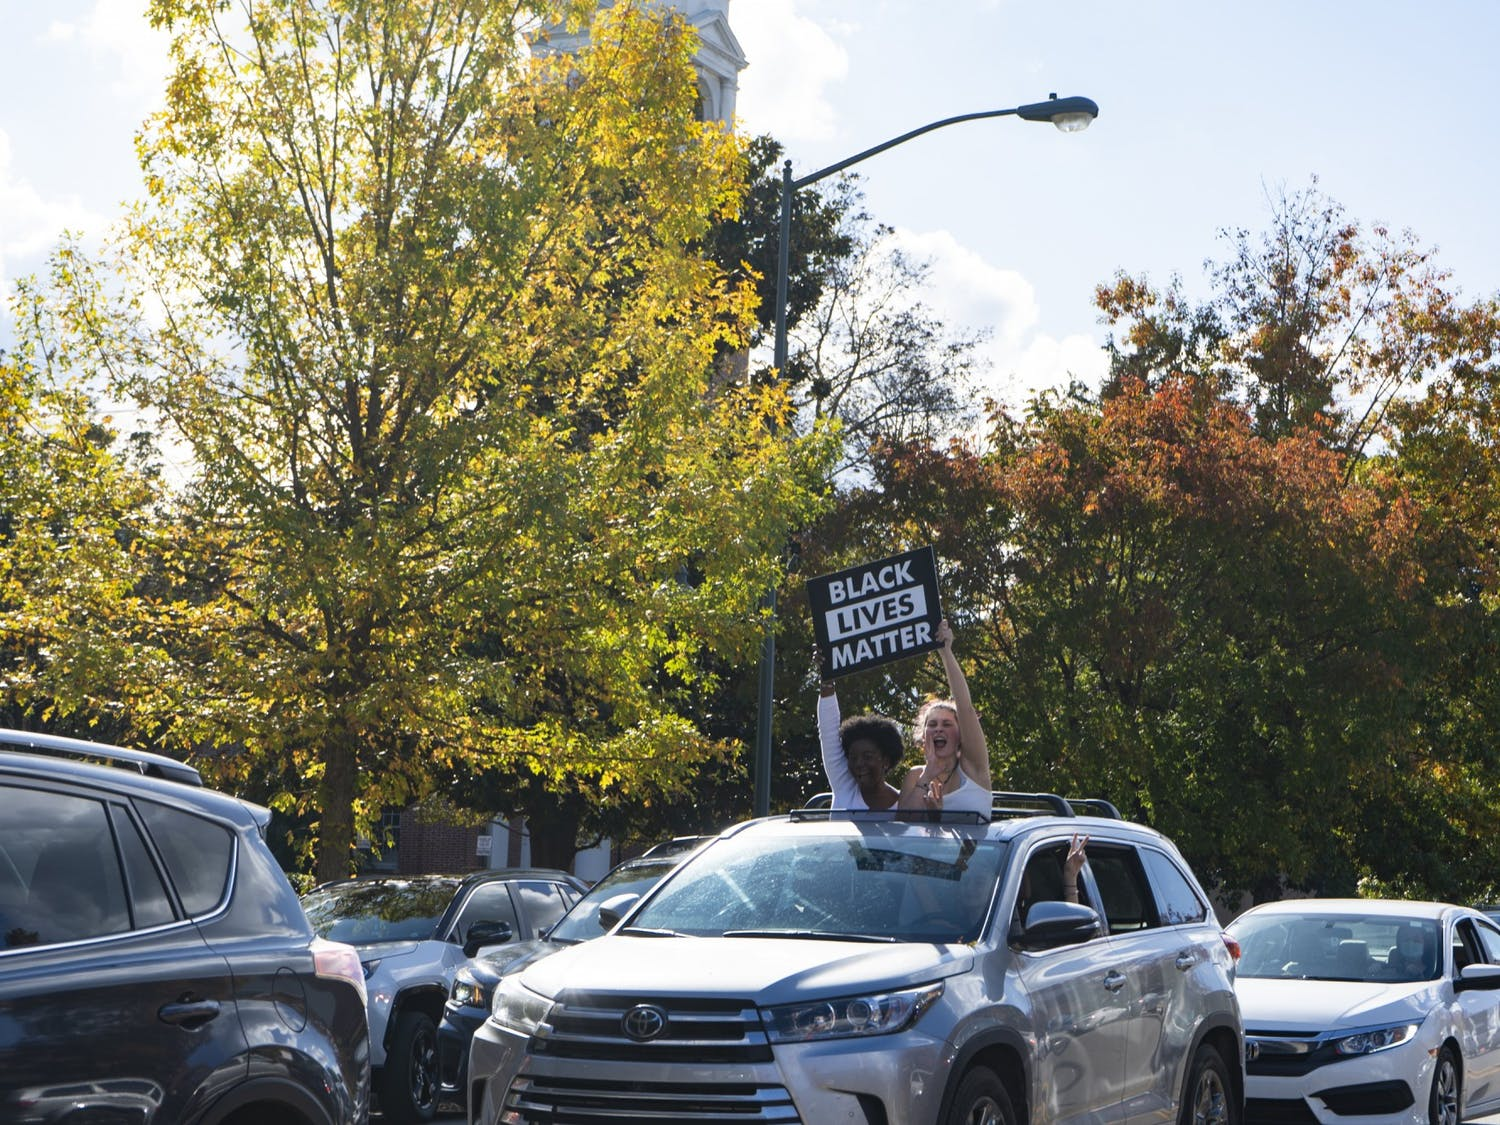 Amidst honking cars, music and shouting, students hold a Black Lives Matter sign as they drive east on Franklin Street the afternoon of the announcement that Former Vice President Joe Biden has won the presidential race on Saturday, Nov. 7, 2020.